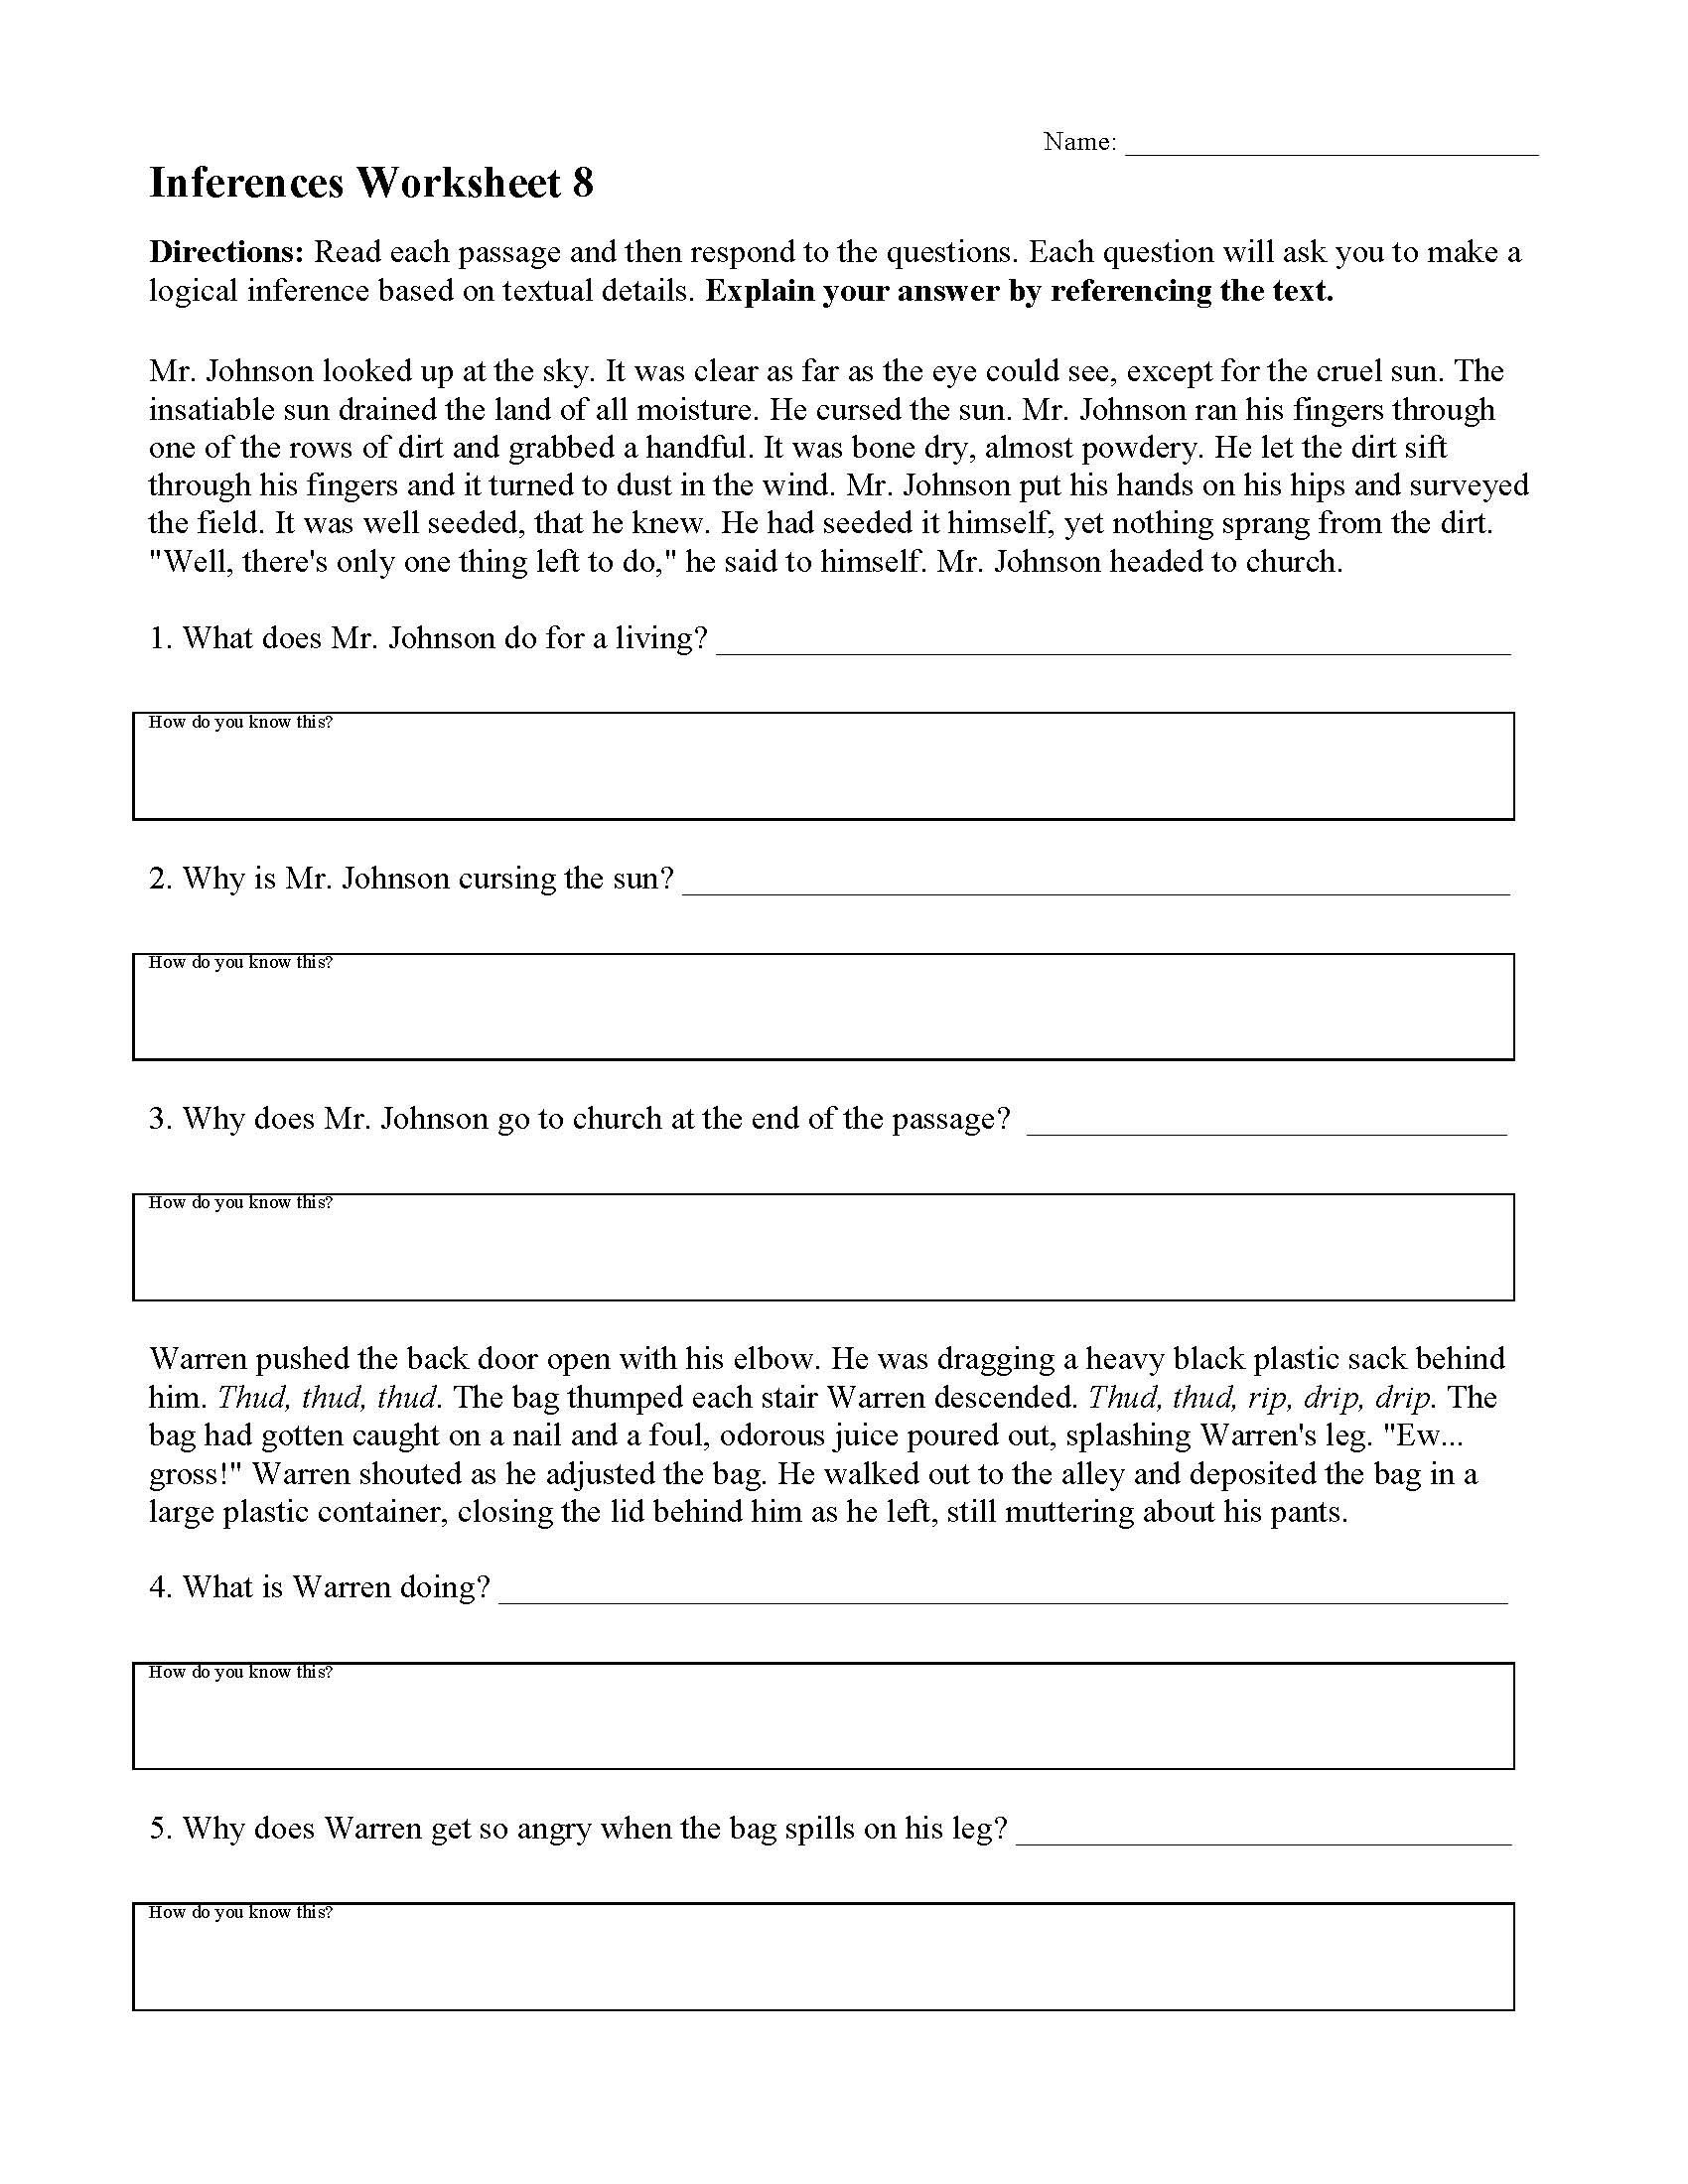 Inferencing Worksheets 4th Grade Inferences Worksheets